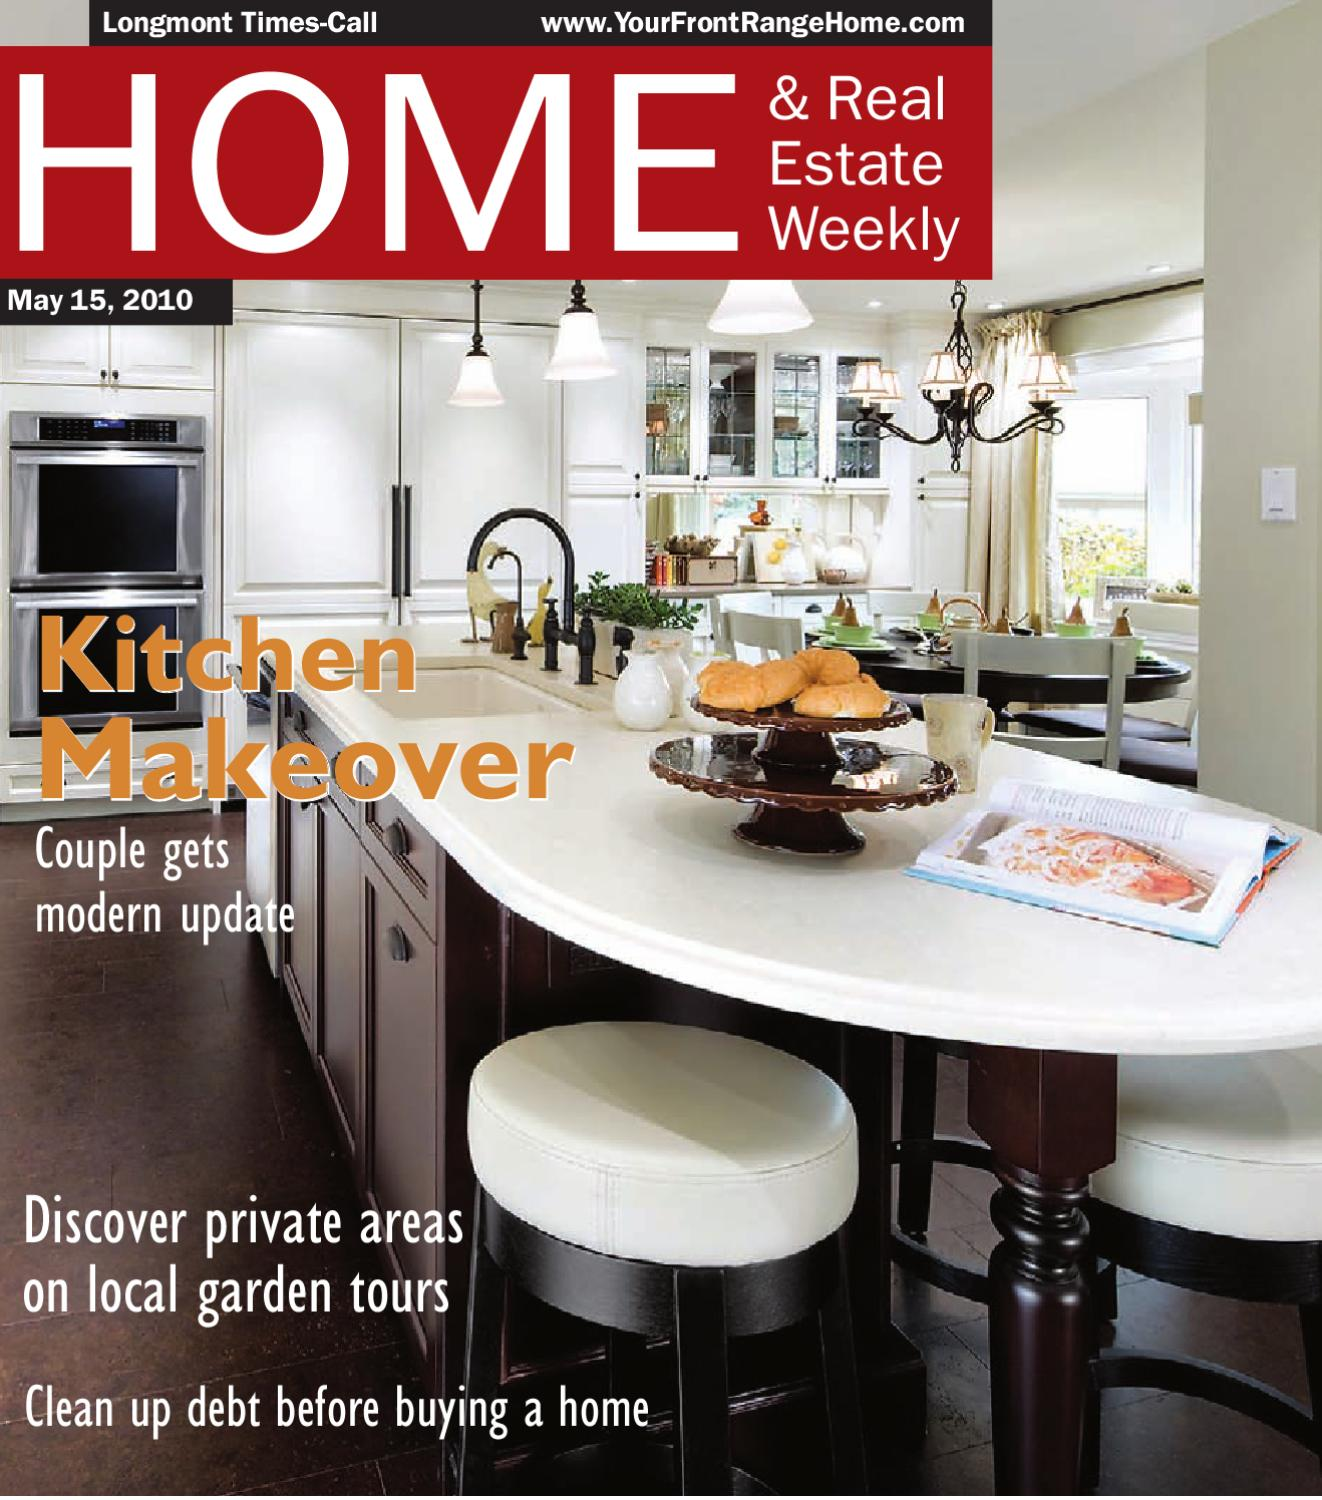 Real Estate Weekly By Times Call